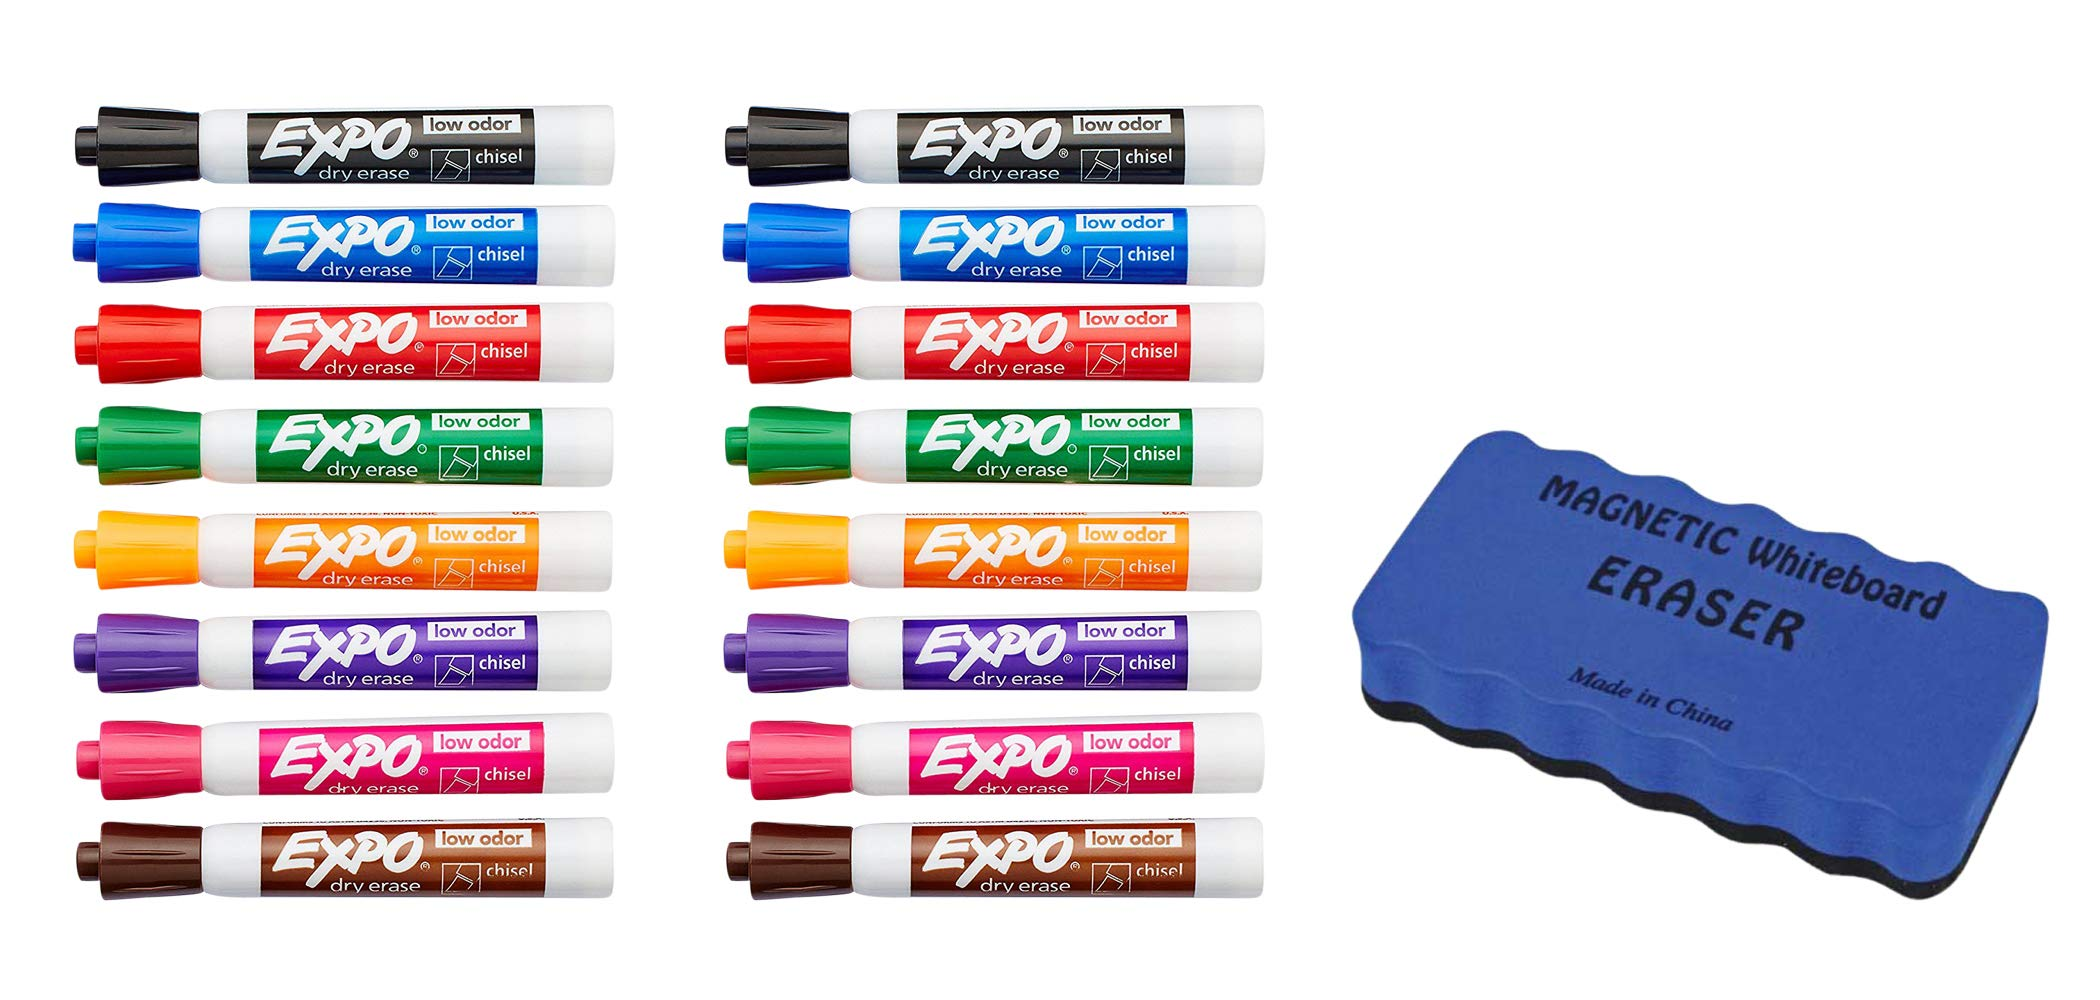 EXPO Low Odor Dry Erase Markers, Chisel Tip, Assorted Colors, 16 Count | Dry Erase Whiteboard Magnetic Board Eraser, Soft Pile